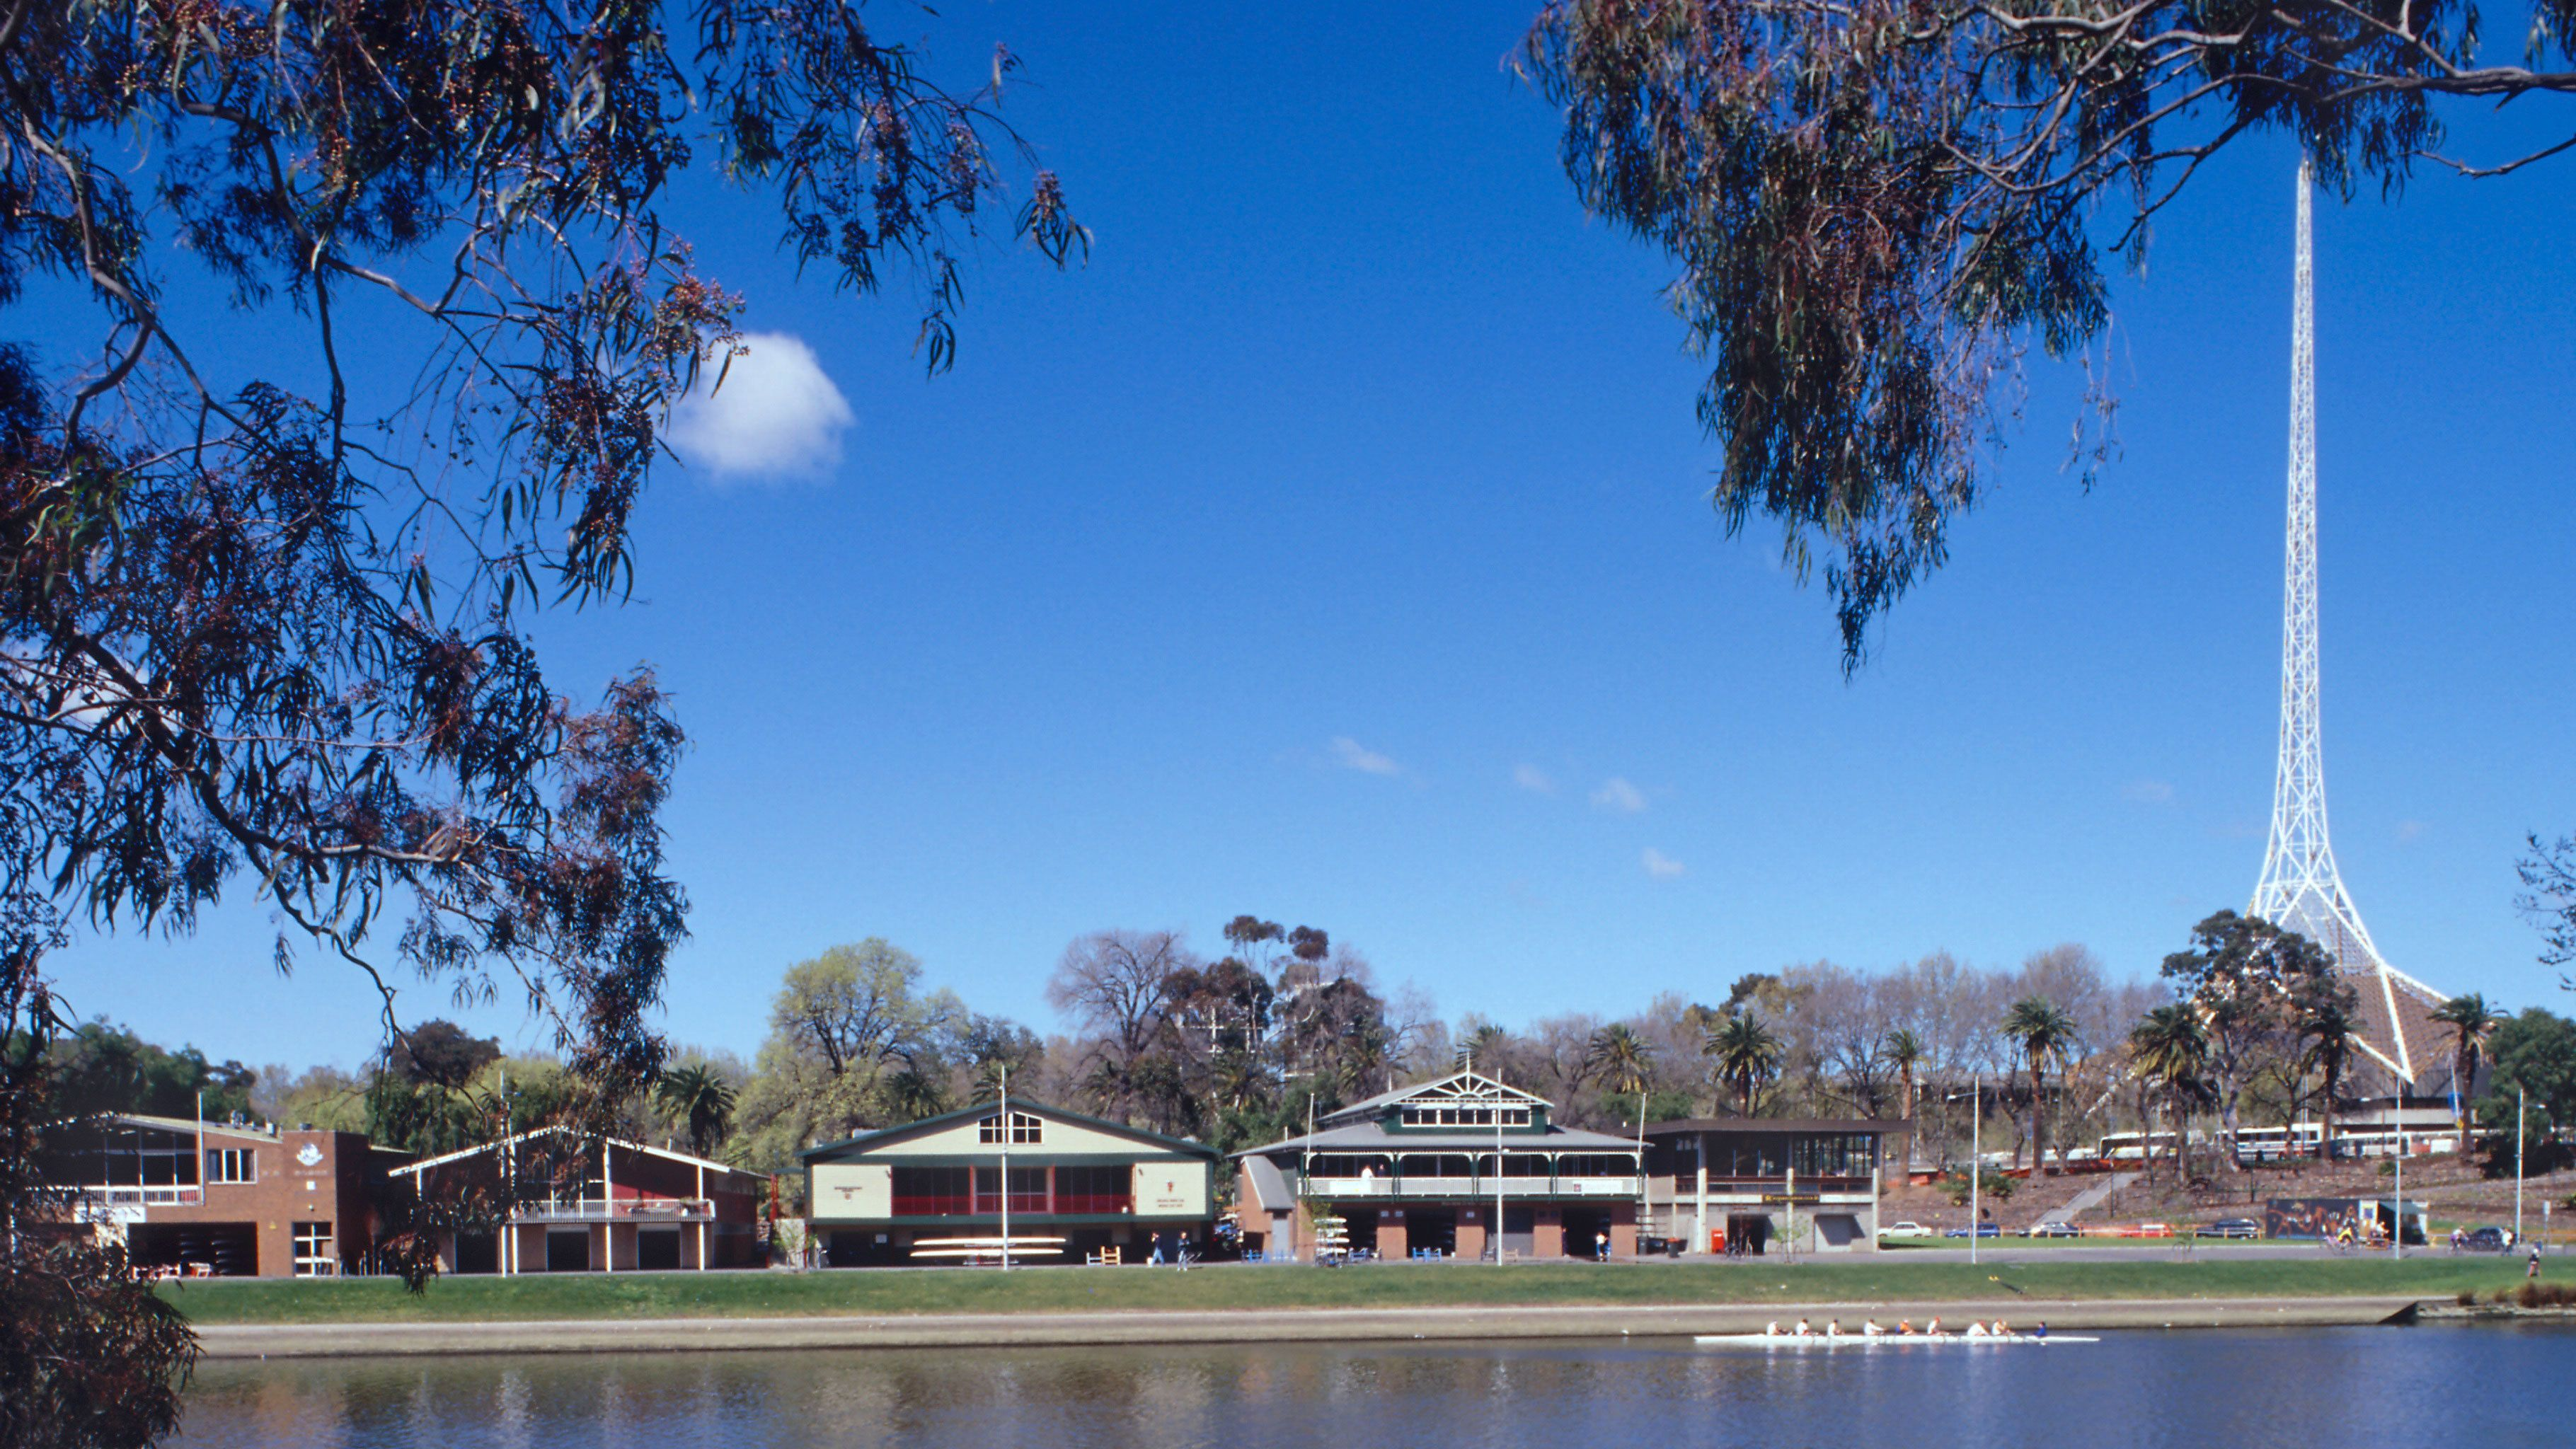 Buildings along the bank of the Yarra River with the Spire of the Arts Centre rising above the trees in Melbourne